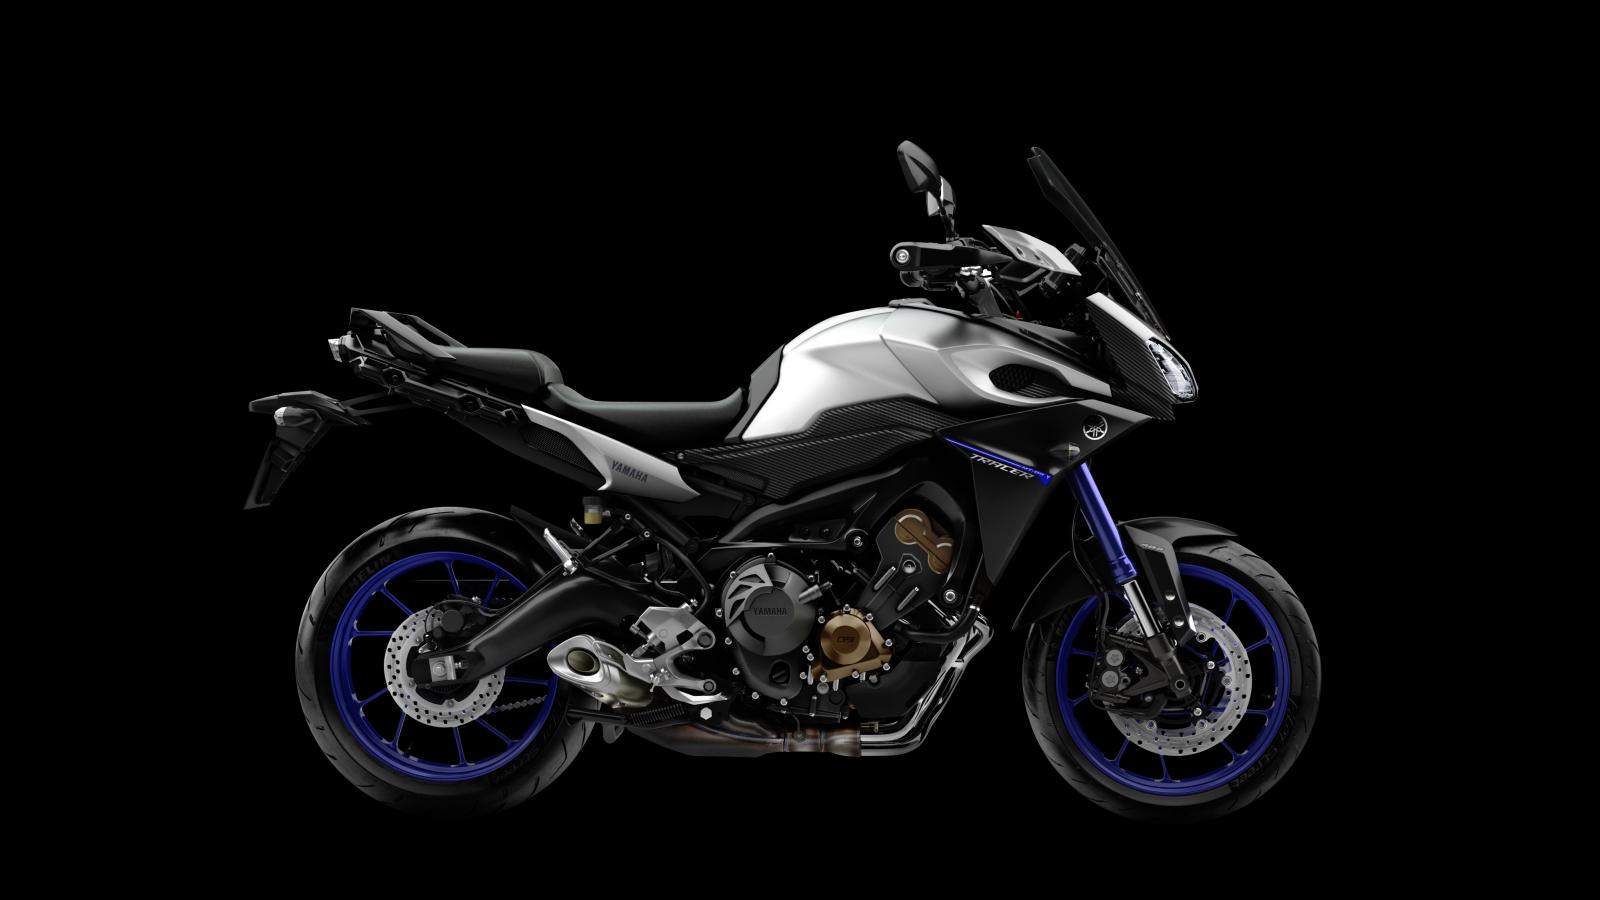 yamaha mt 09 tracer 2015 motorrad fotos motorrad bilder. Black Bedroom Furniture Sets. Home Design Ideas